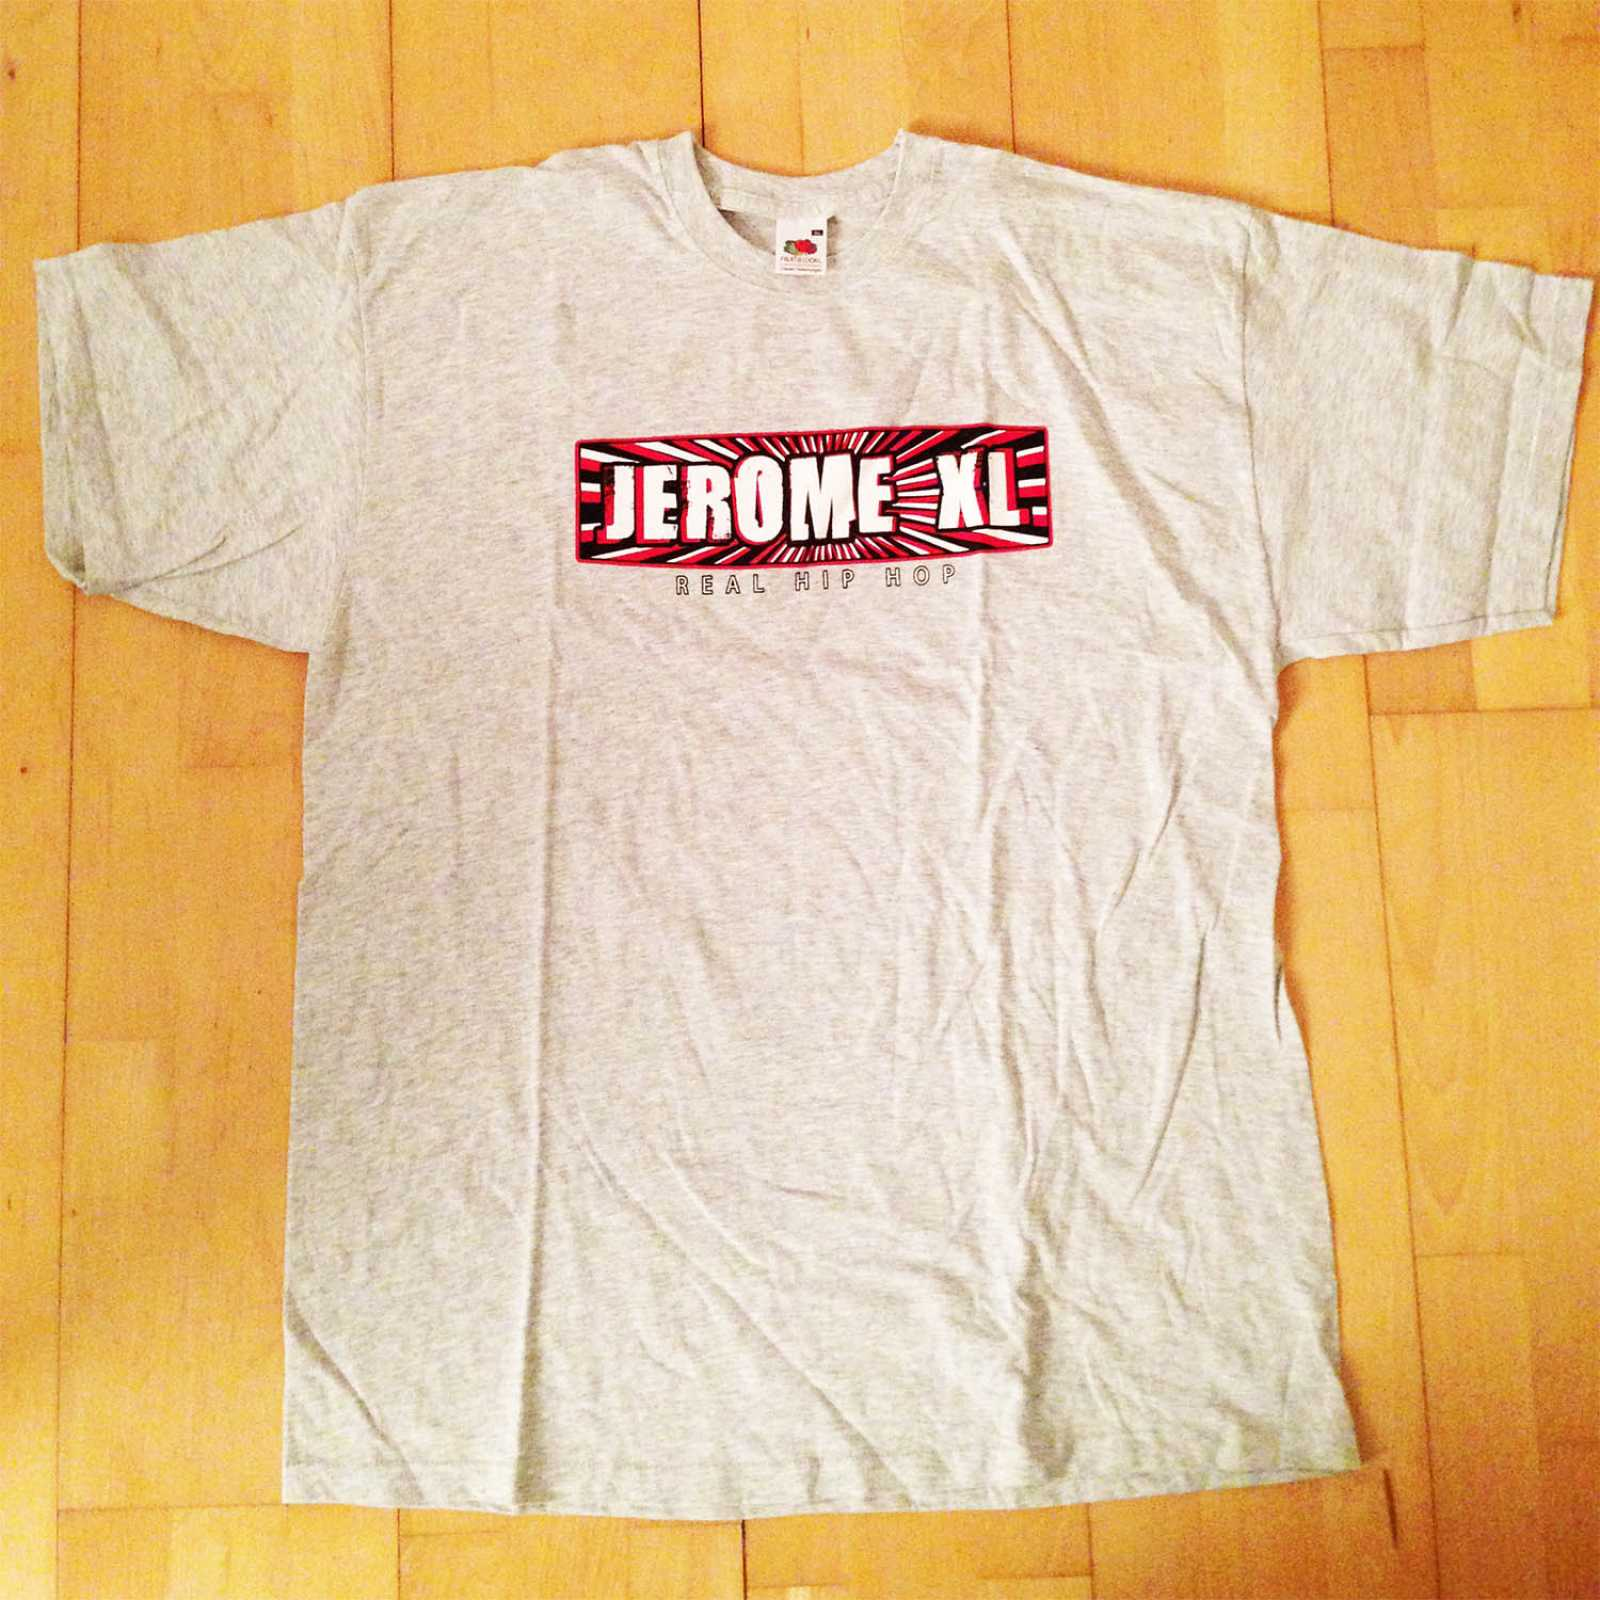 Jerome XL - T-Shirt - Grijs